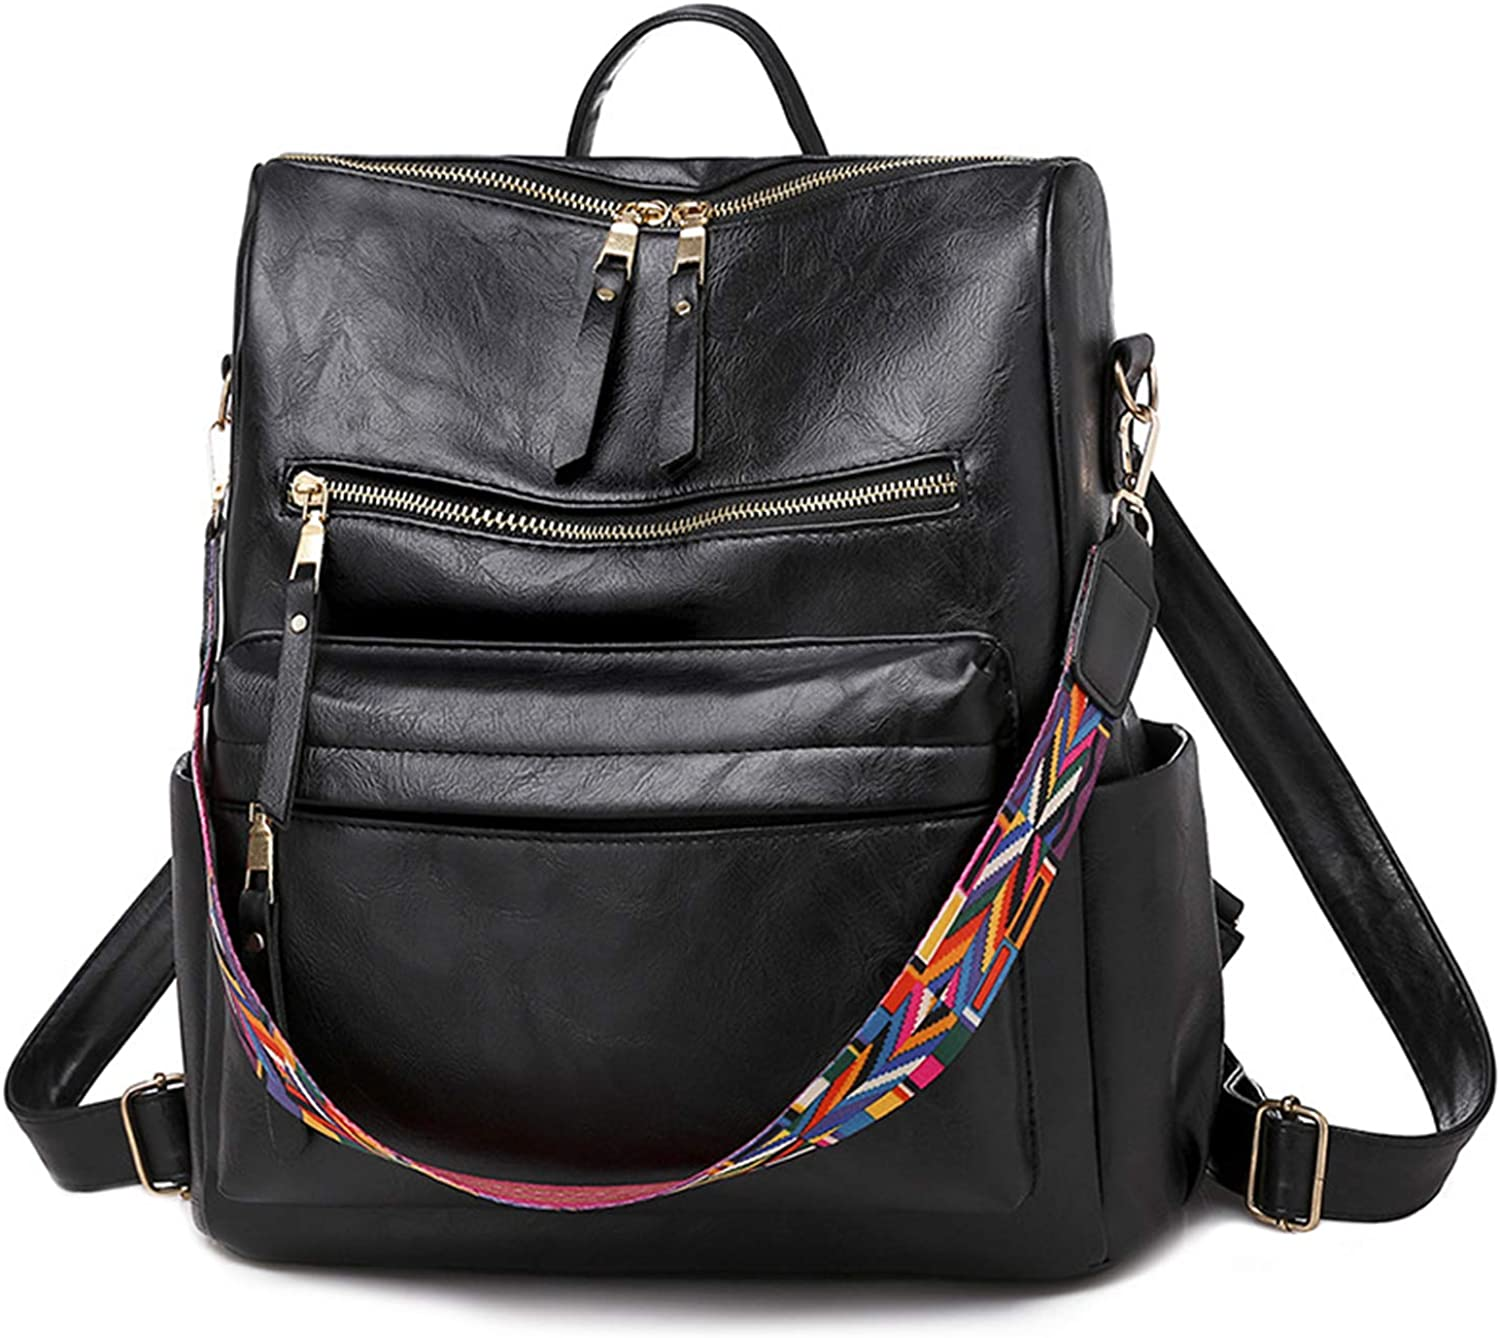 HOSTIC Women Backpack High order Retro In a popularity Large Travel Leather Casual PU Backp